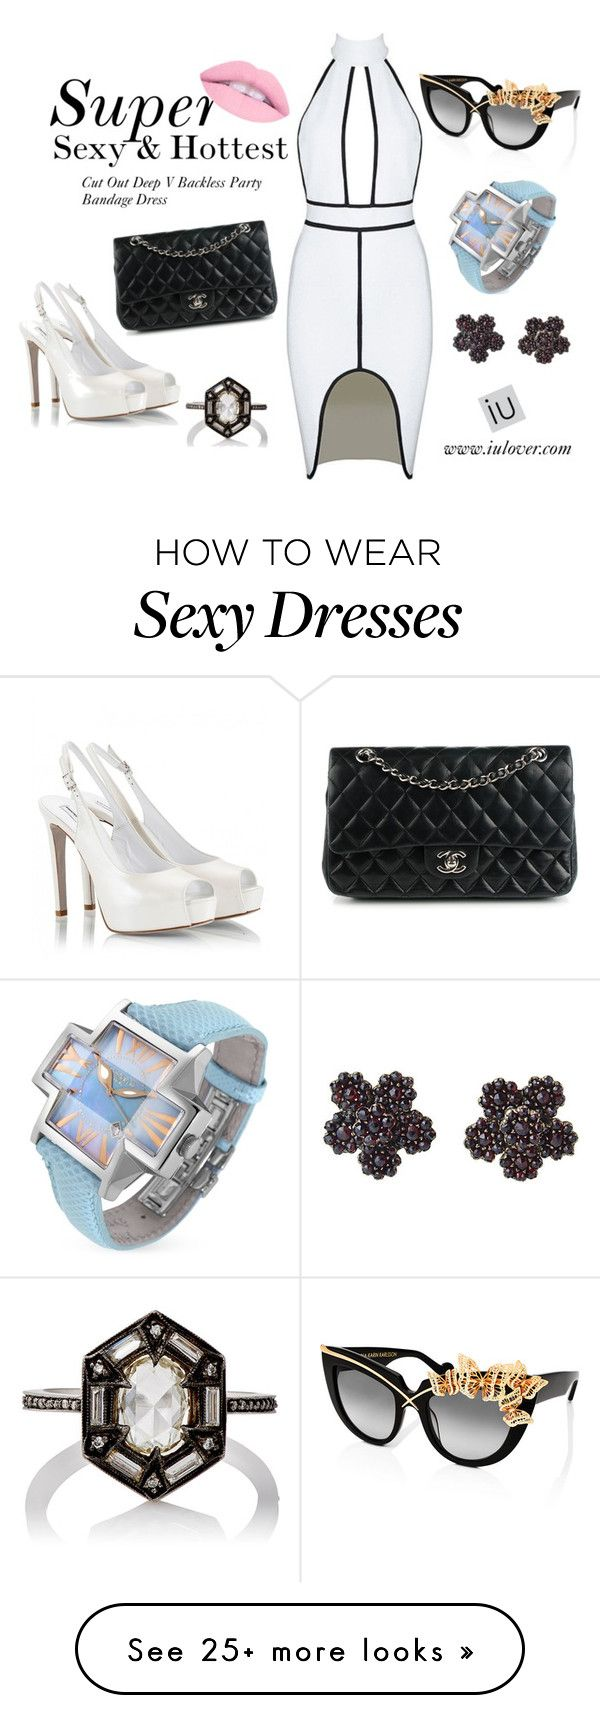 """Super sexy & hottest"" by iulover on Polyvore featuring Anna-Karin Karlsson, Fratelli Karida, Chanel, Cathy Waterman and Locman"